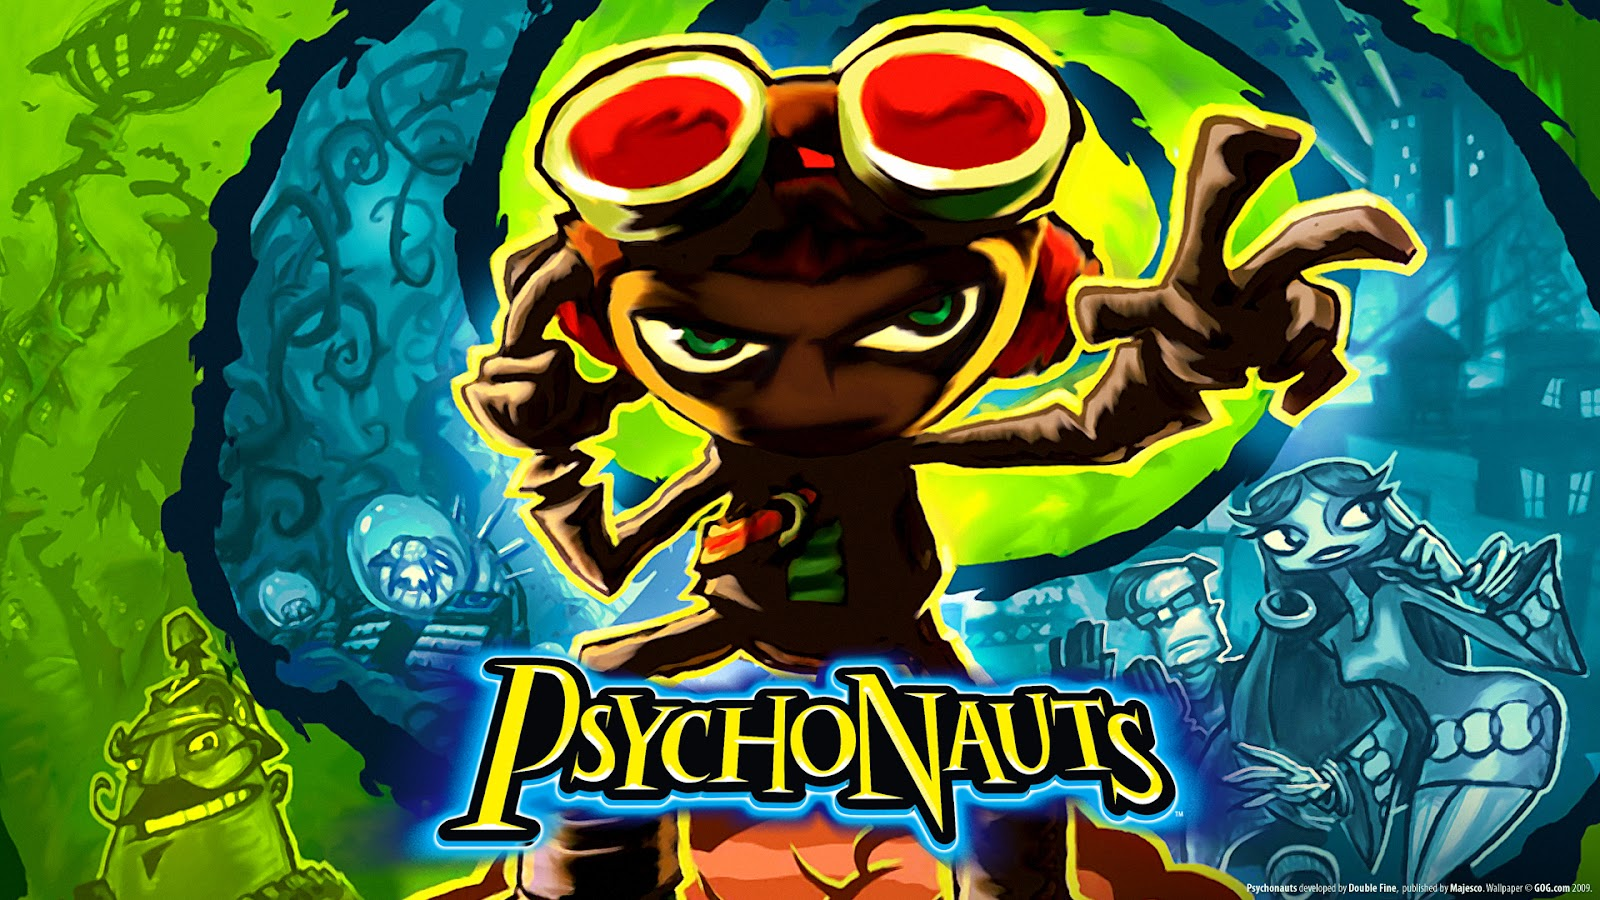 The greatest game ever made Psychonauts is for just two 1600x900